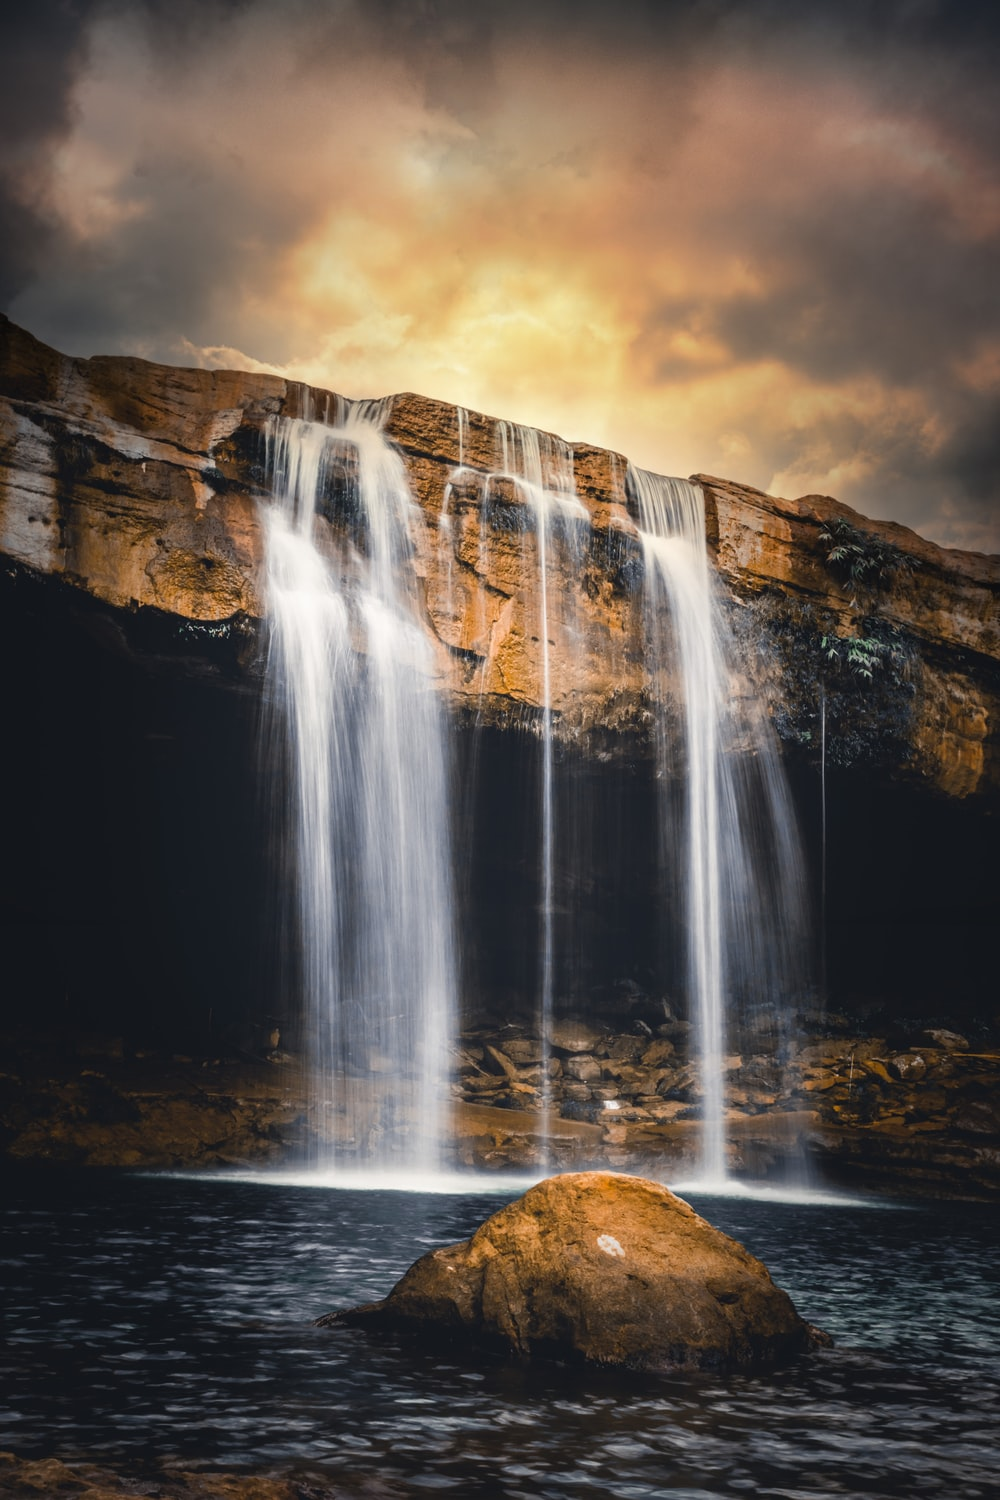 500 Waterfall Images Stunning Download Free Pictures On Unsplash